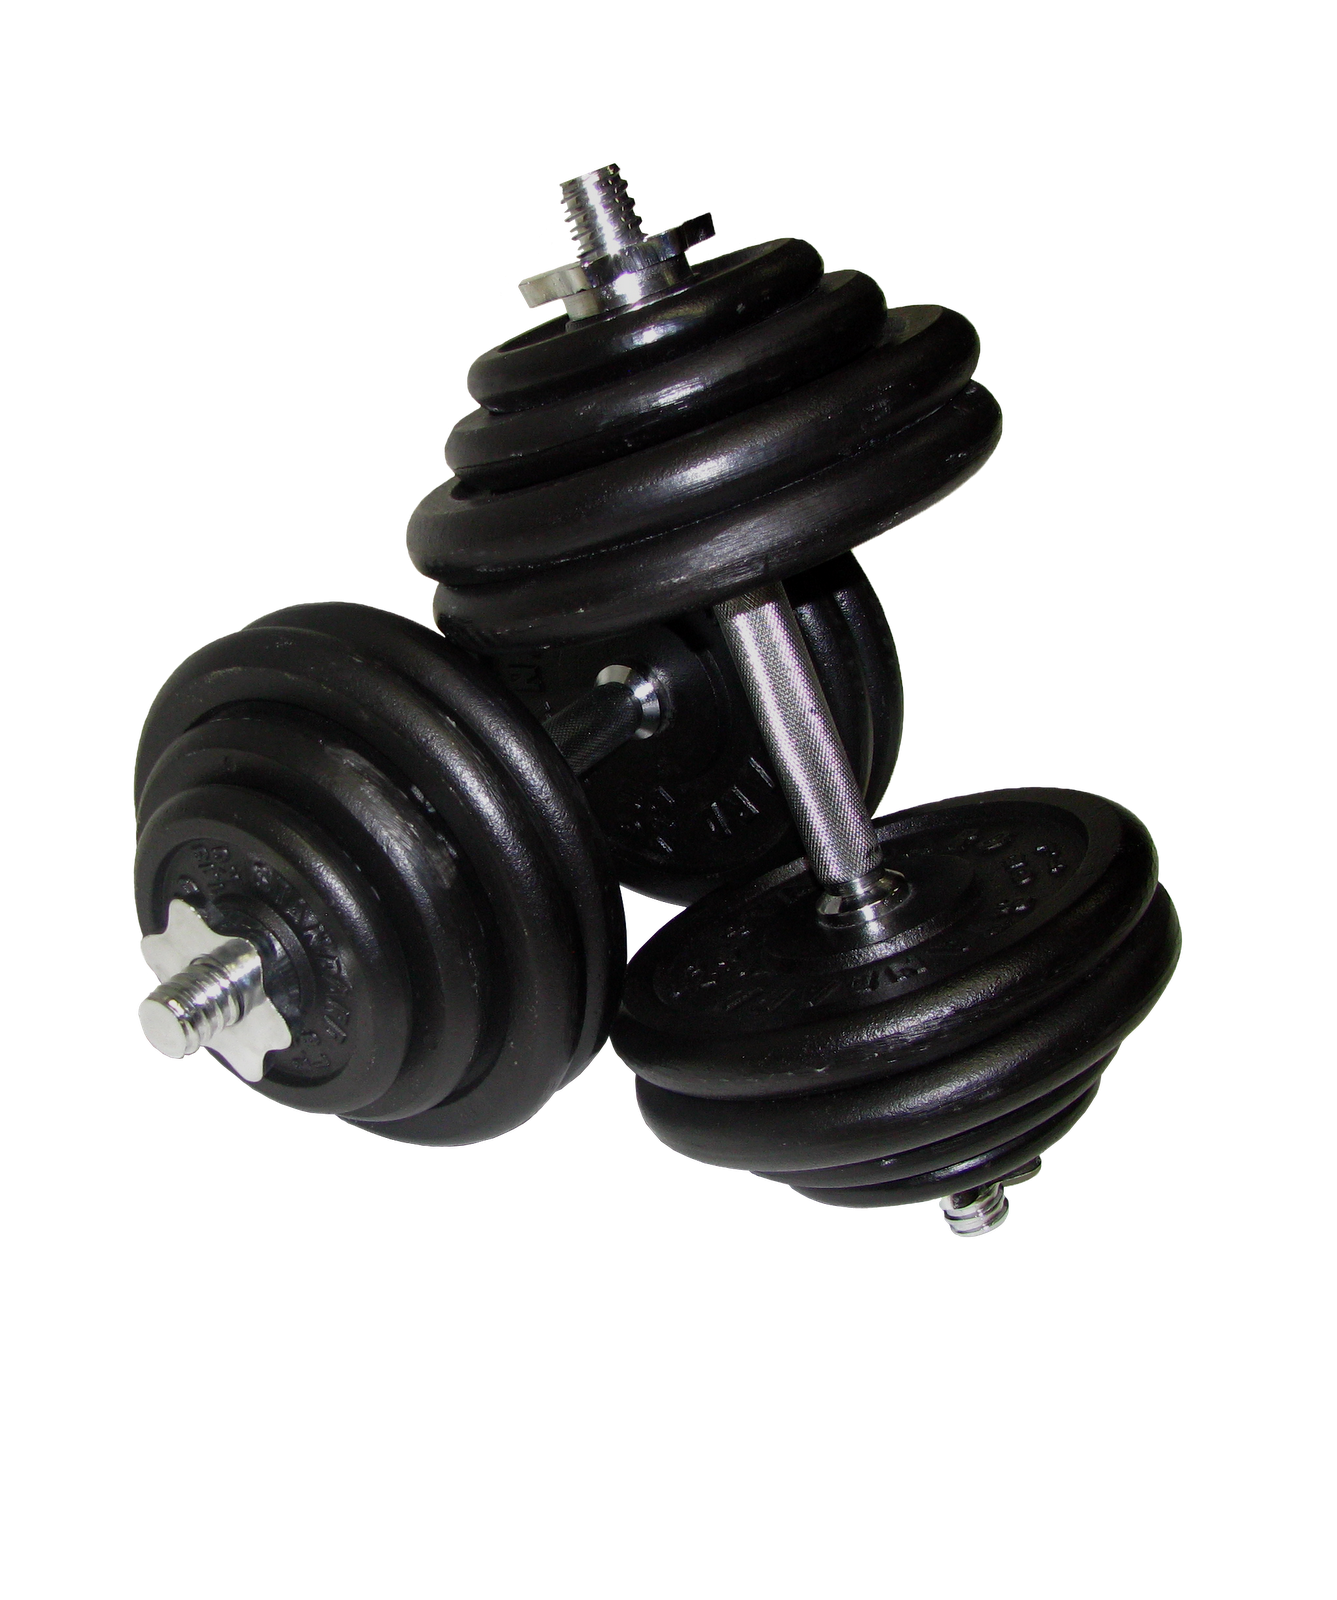 Dumbbell HD PNG-PlusPNG.com-1337 - Dumbbell HD PNG